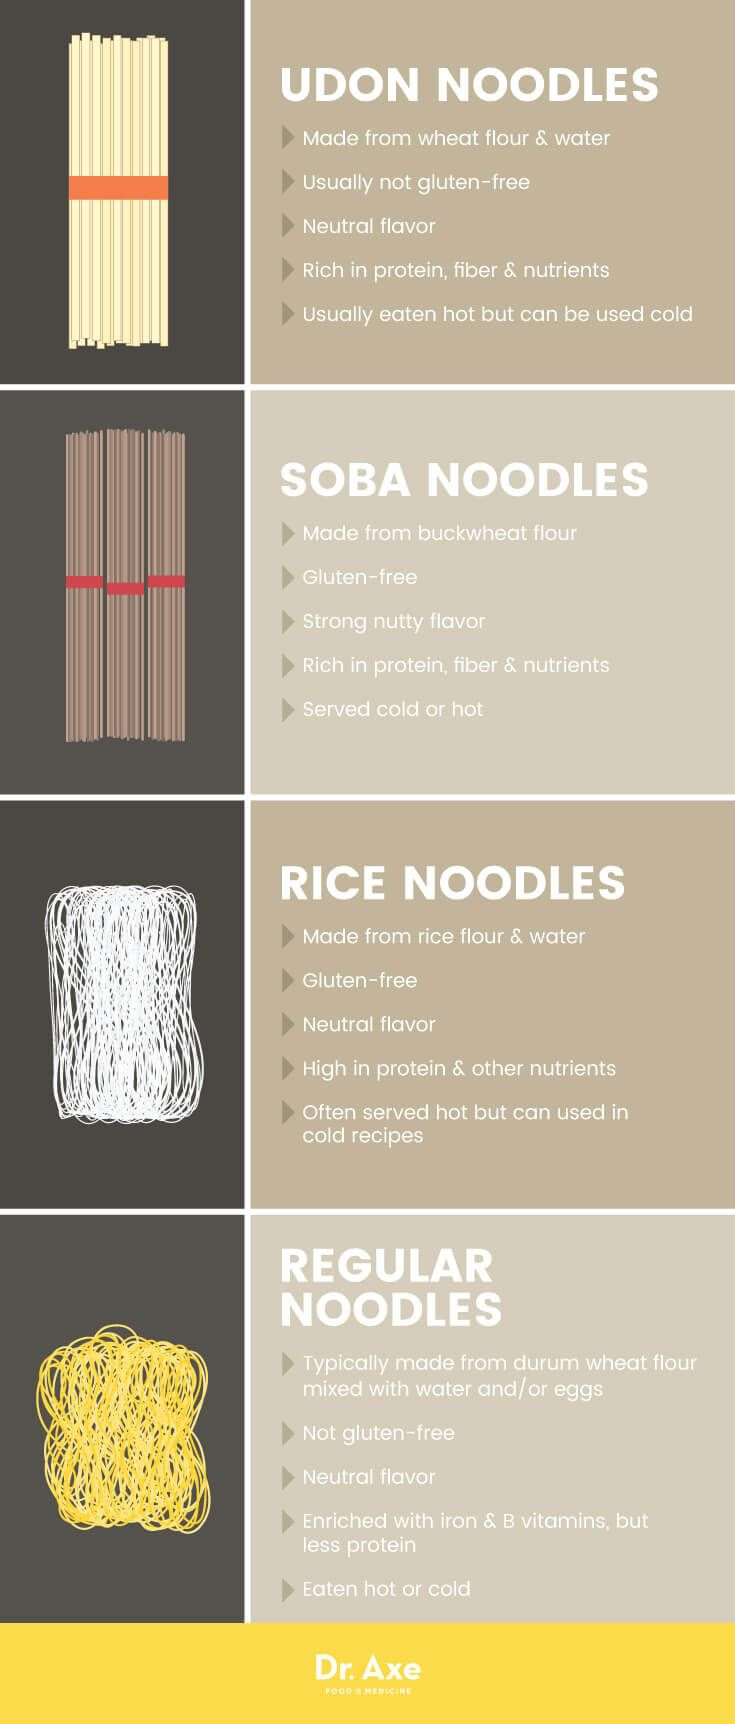 Top 5 Benefits of Udon Noodles + Udon Noodle Uses & Recipes - Dr. Axe